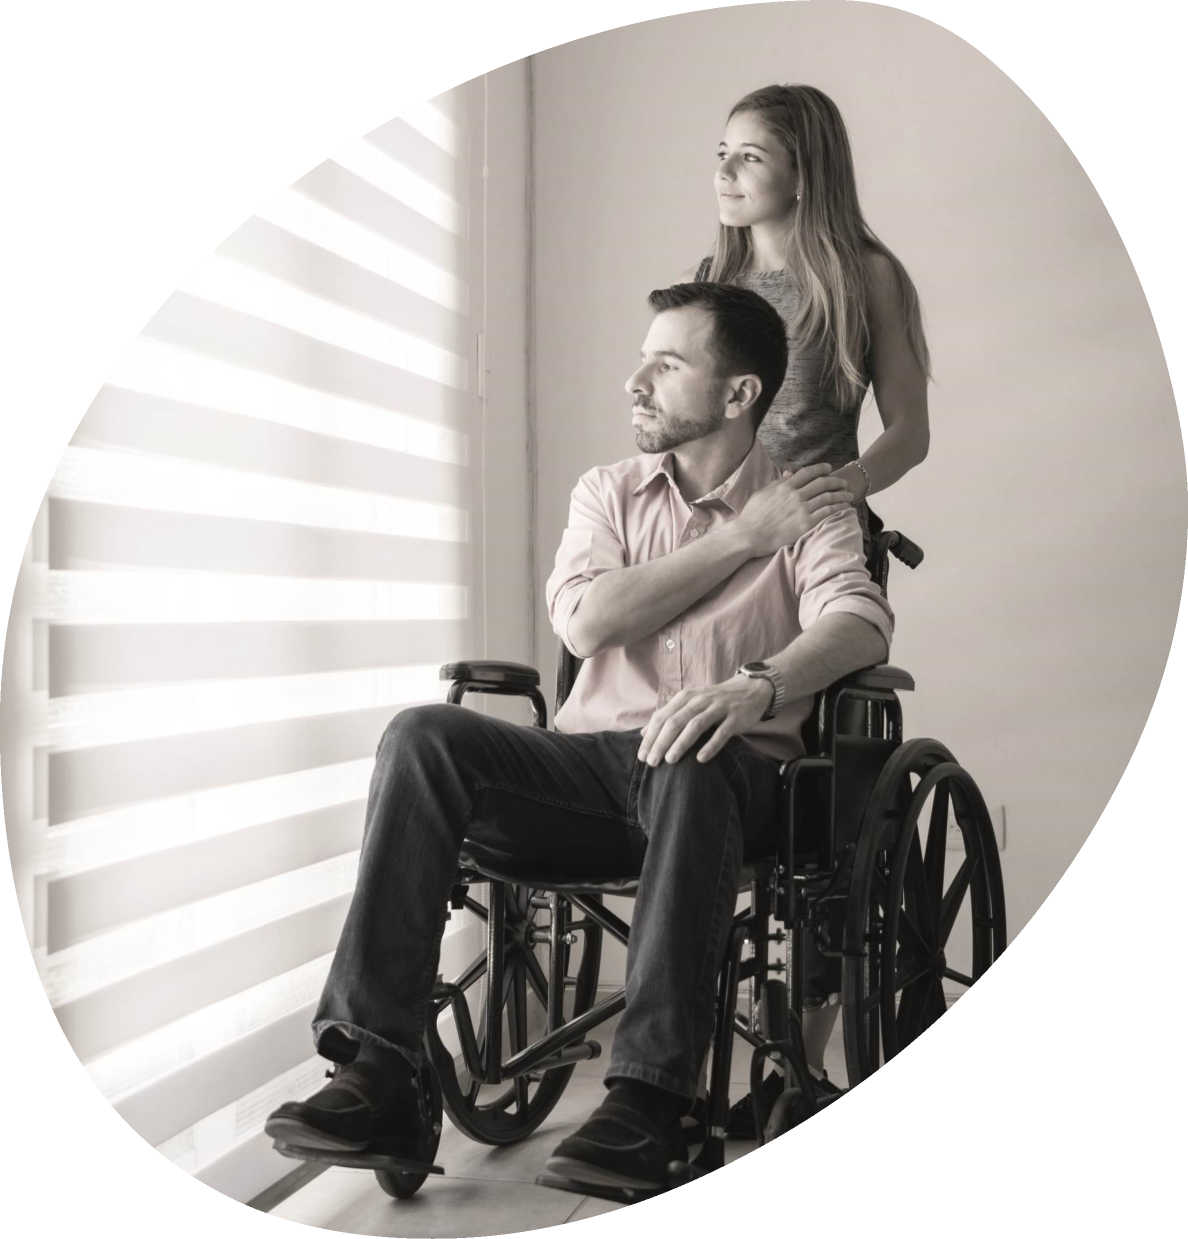 Man in wheelchair with partner